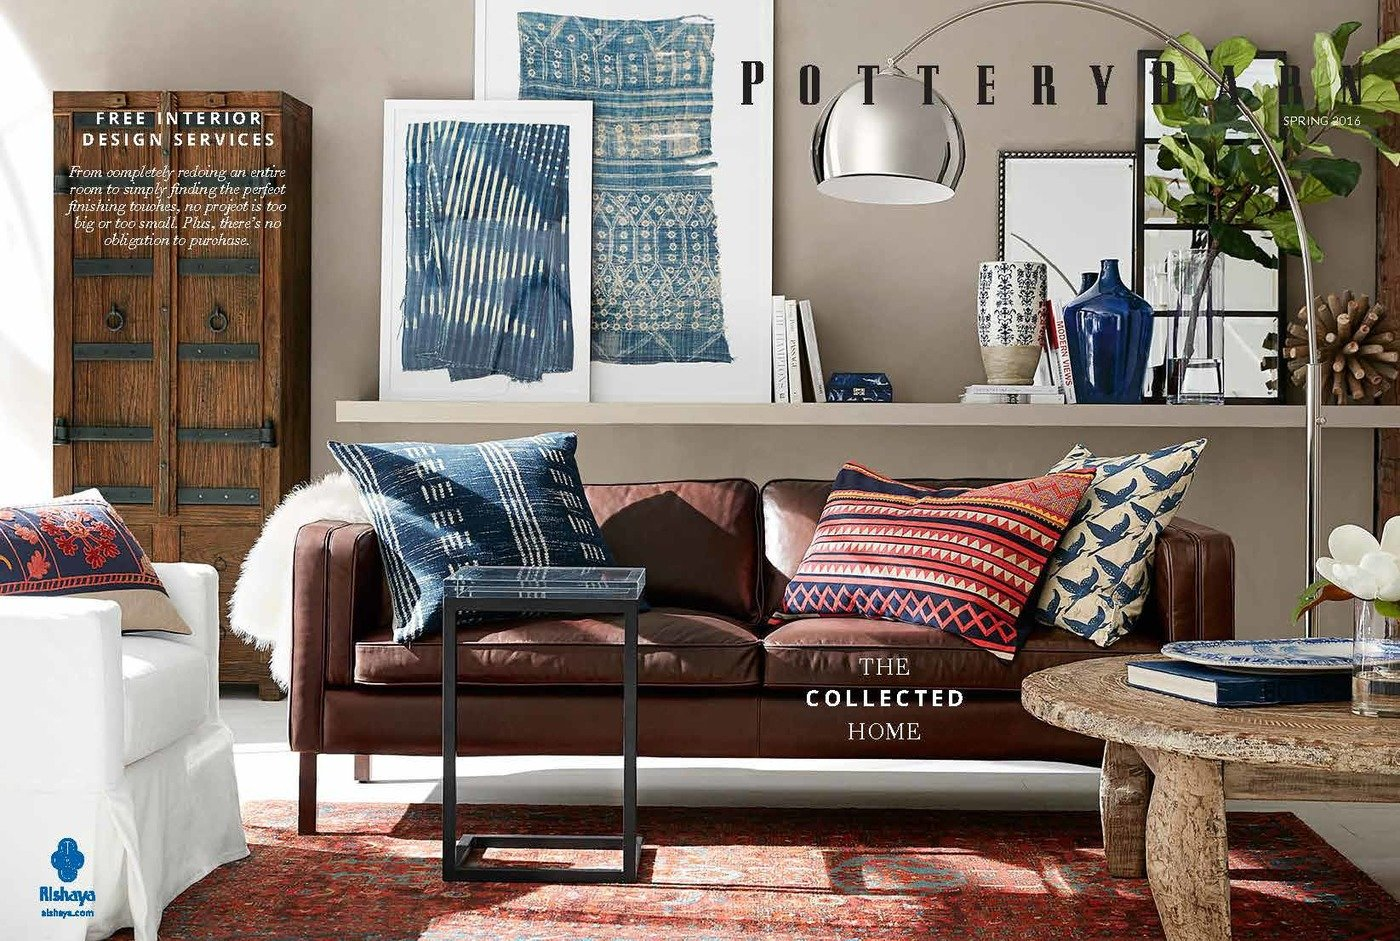 Pottery Barn Alshaya Middle East Catalog By Dirk Schryver At